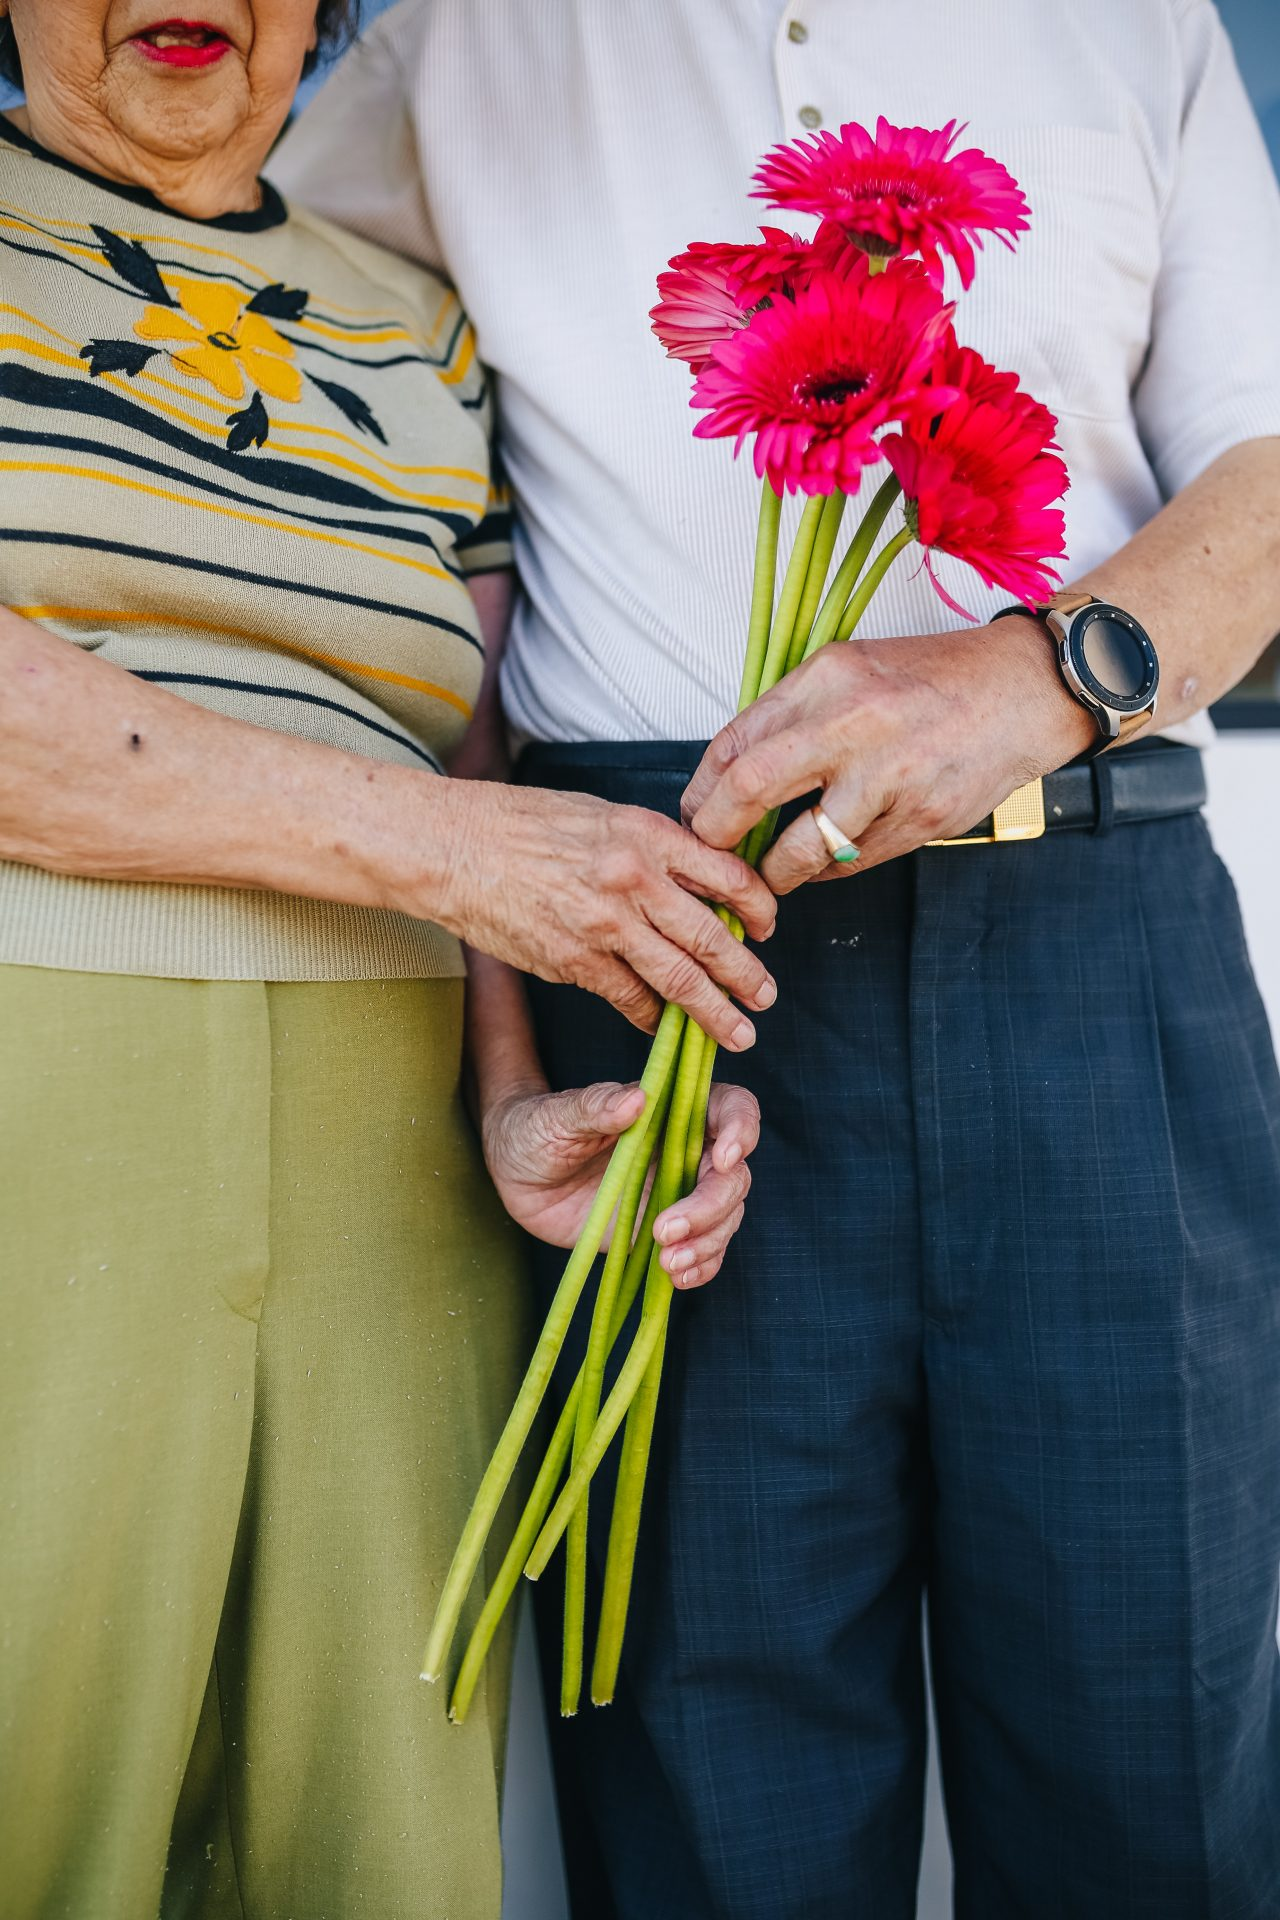 Risks Older People Need to Be Aware Of On A Daily Basis